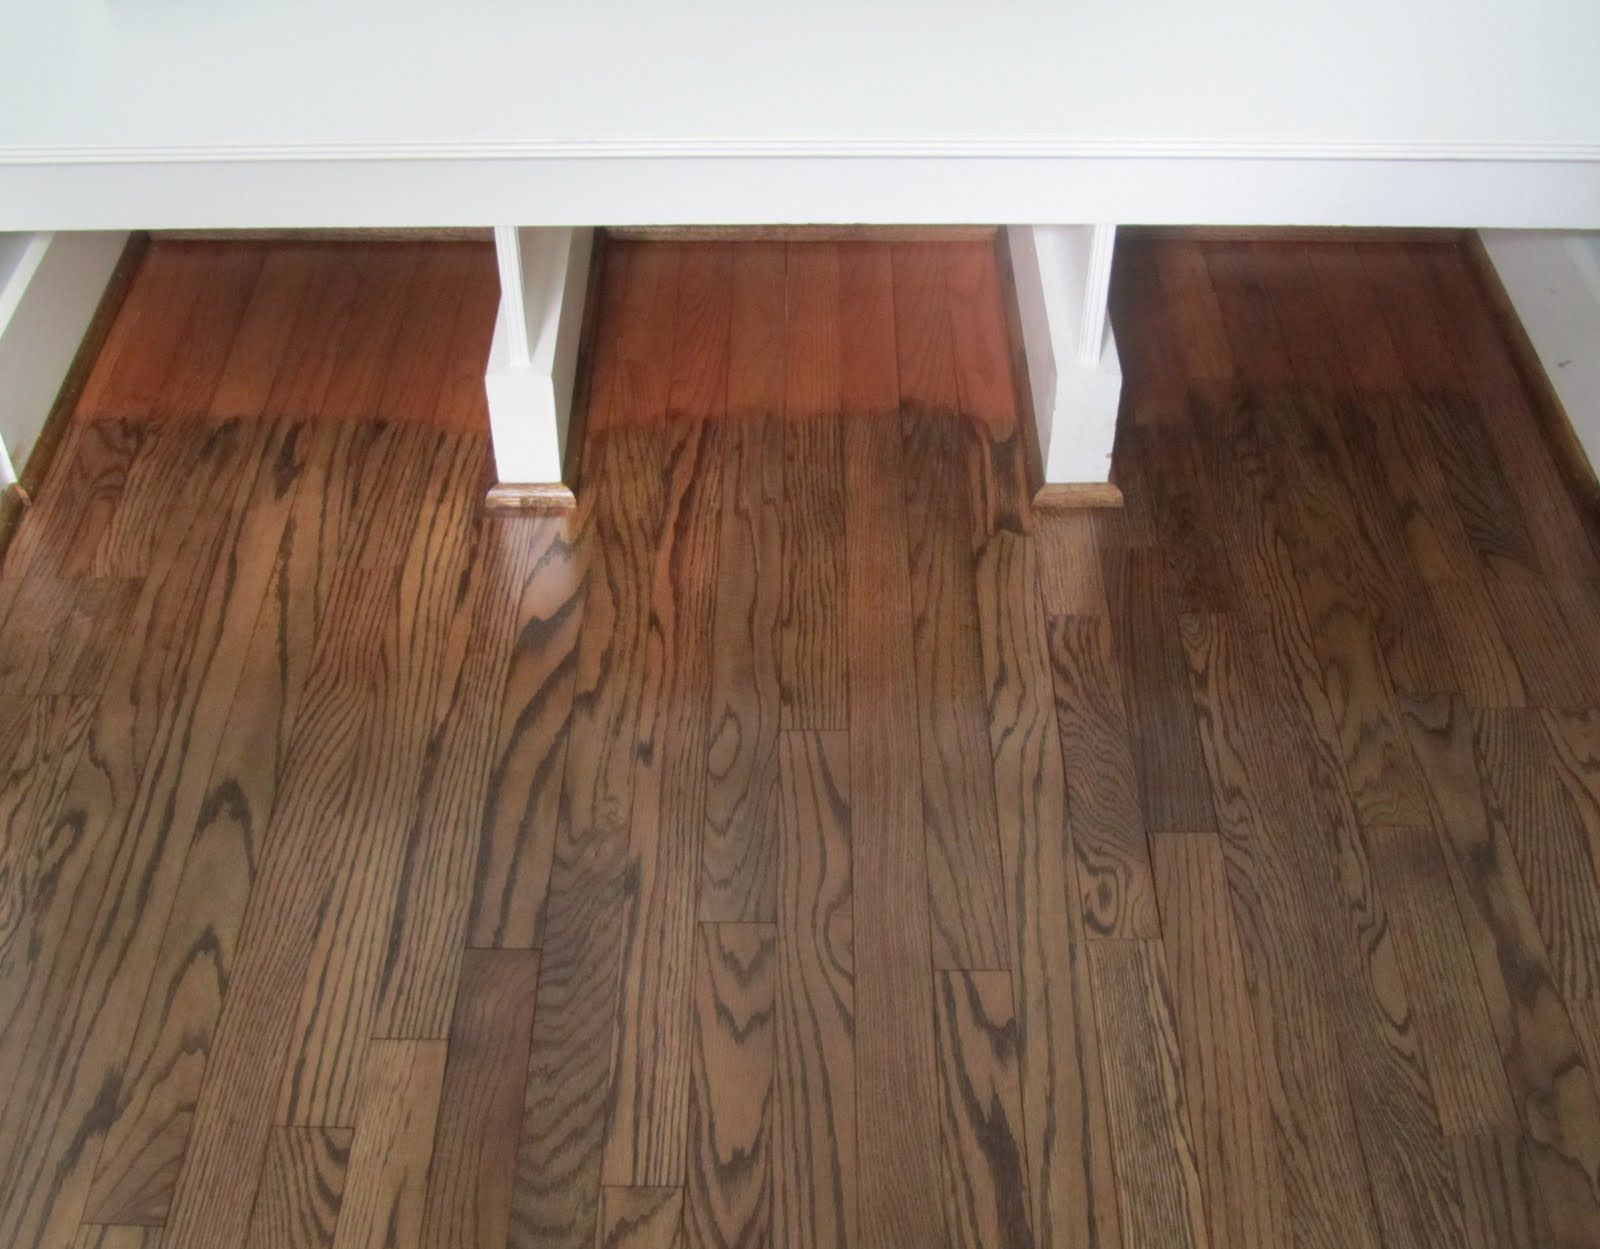 Before And After Hardwood Floors | ... Acorn: The Process Of Refinishing  Hardwood. Sanding ...